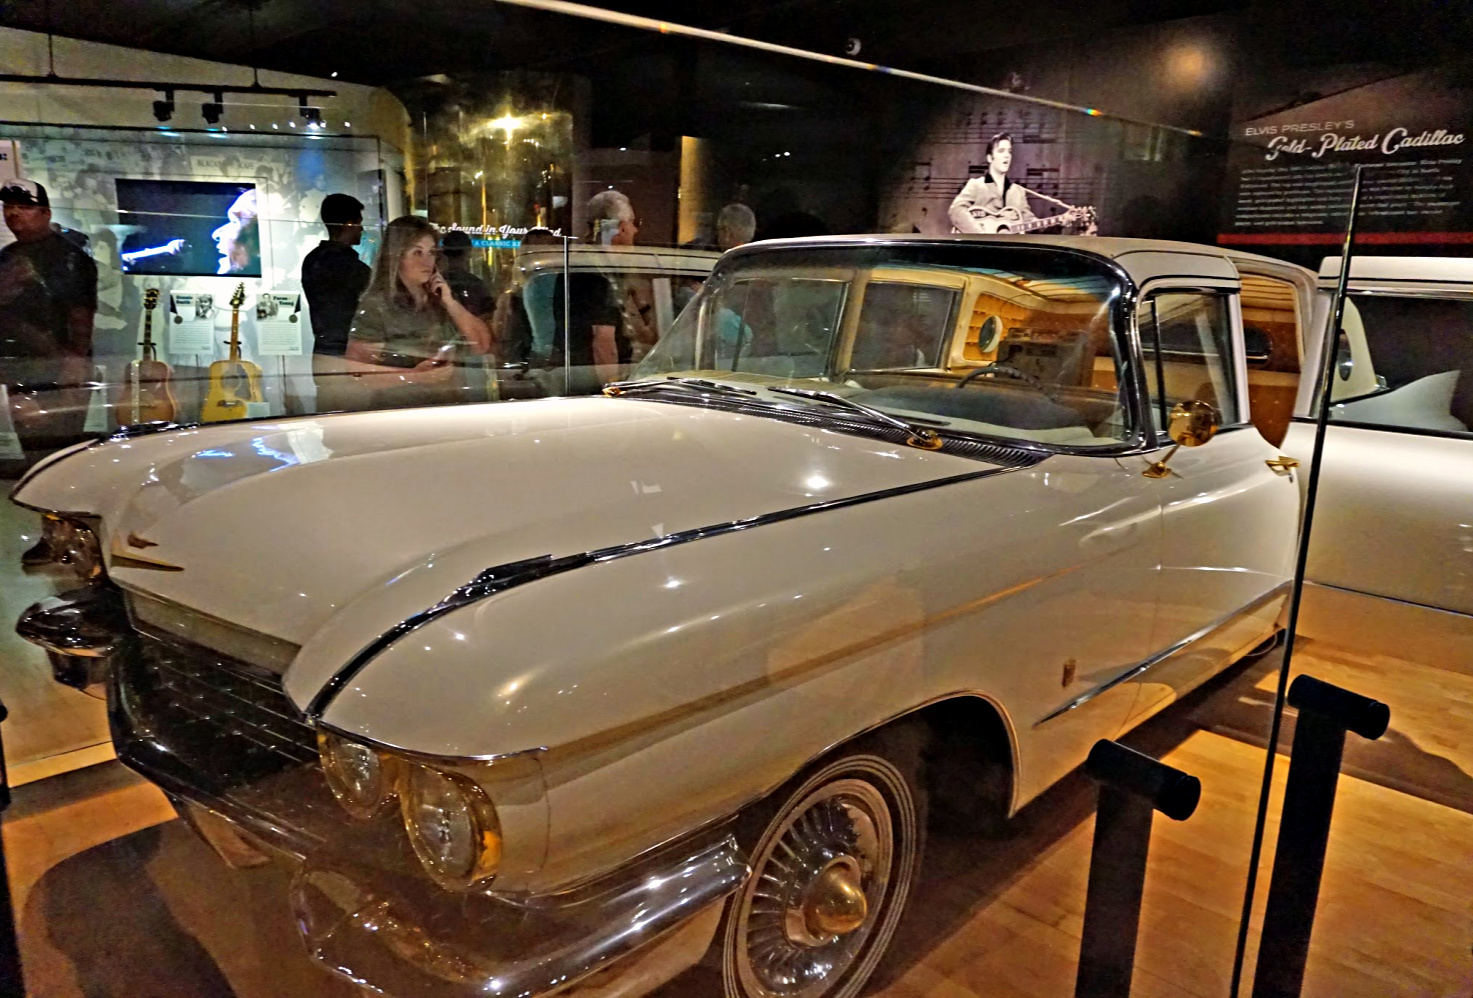 Elvis Presley's 1960 Gold Cadillac at the Country Music Hall of Fame.